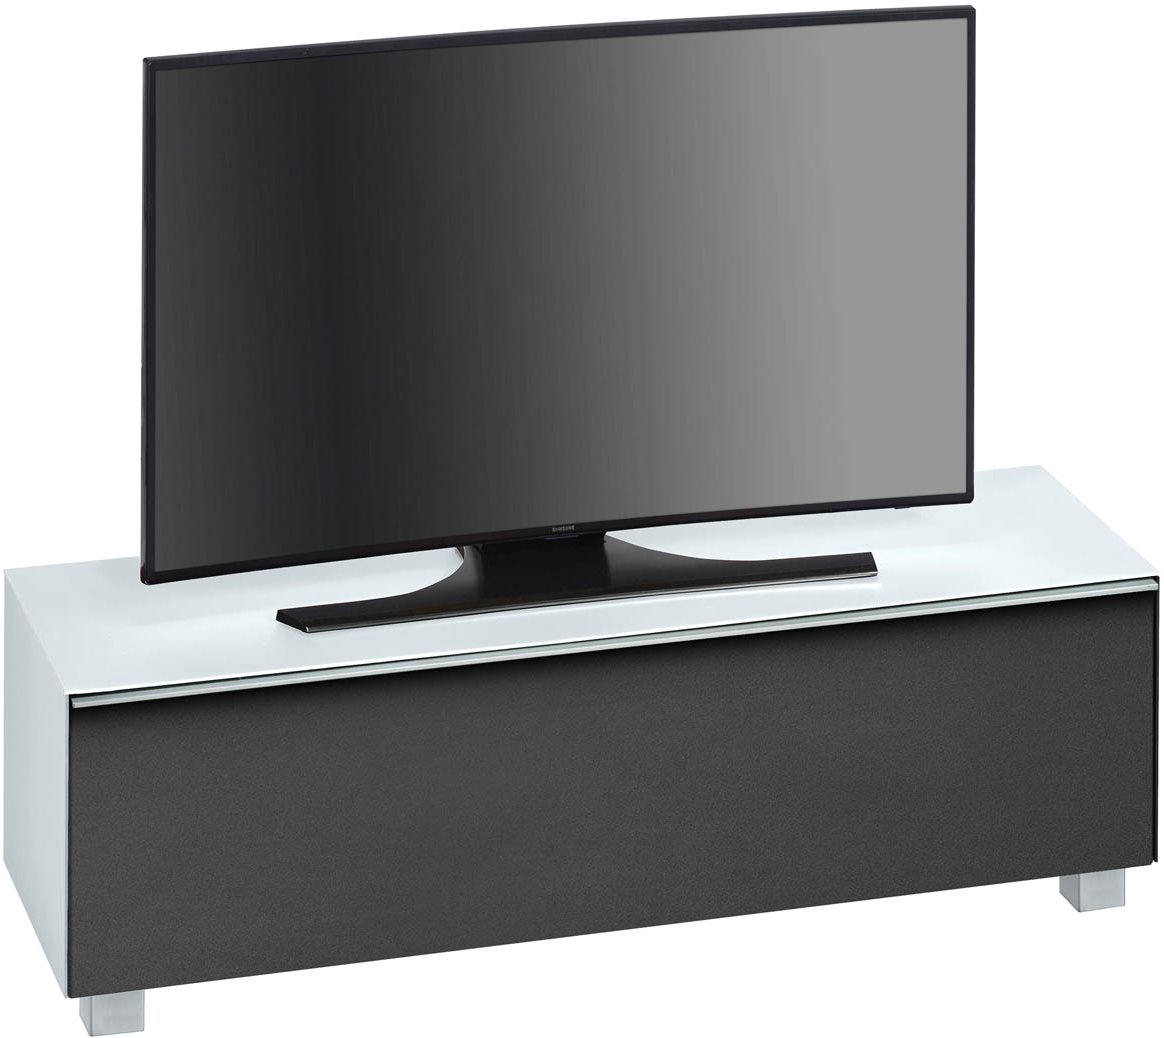 maja 7736 3673 tv stands. Black Bedroom Furniture Sets. Home Design Ideas